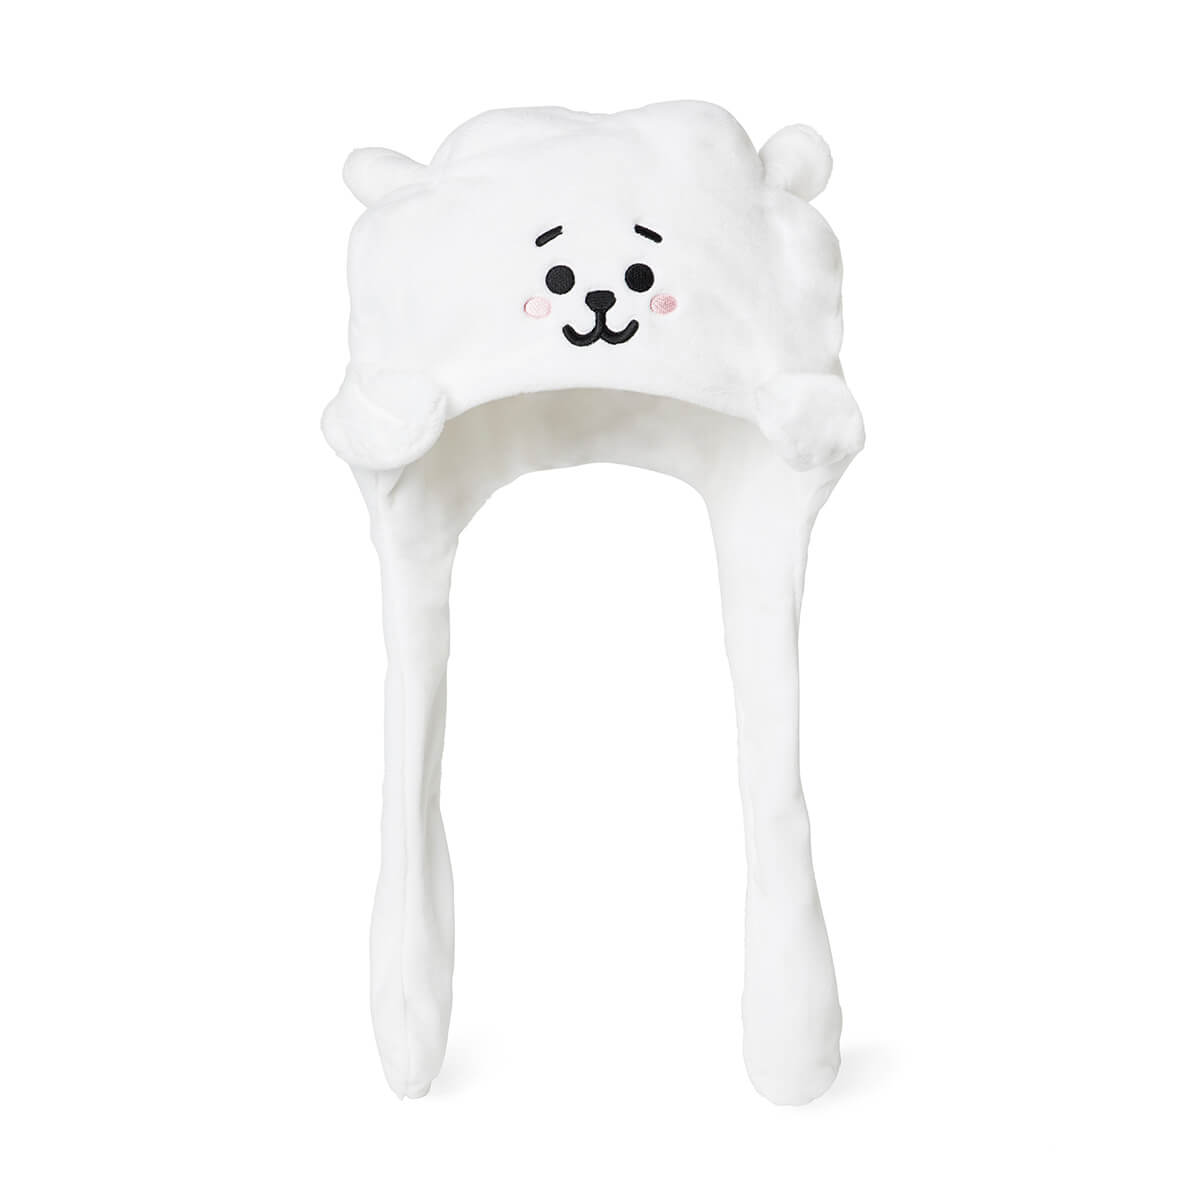 BT21 RJ Plush Action Hat